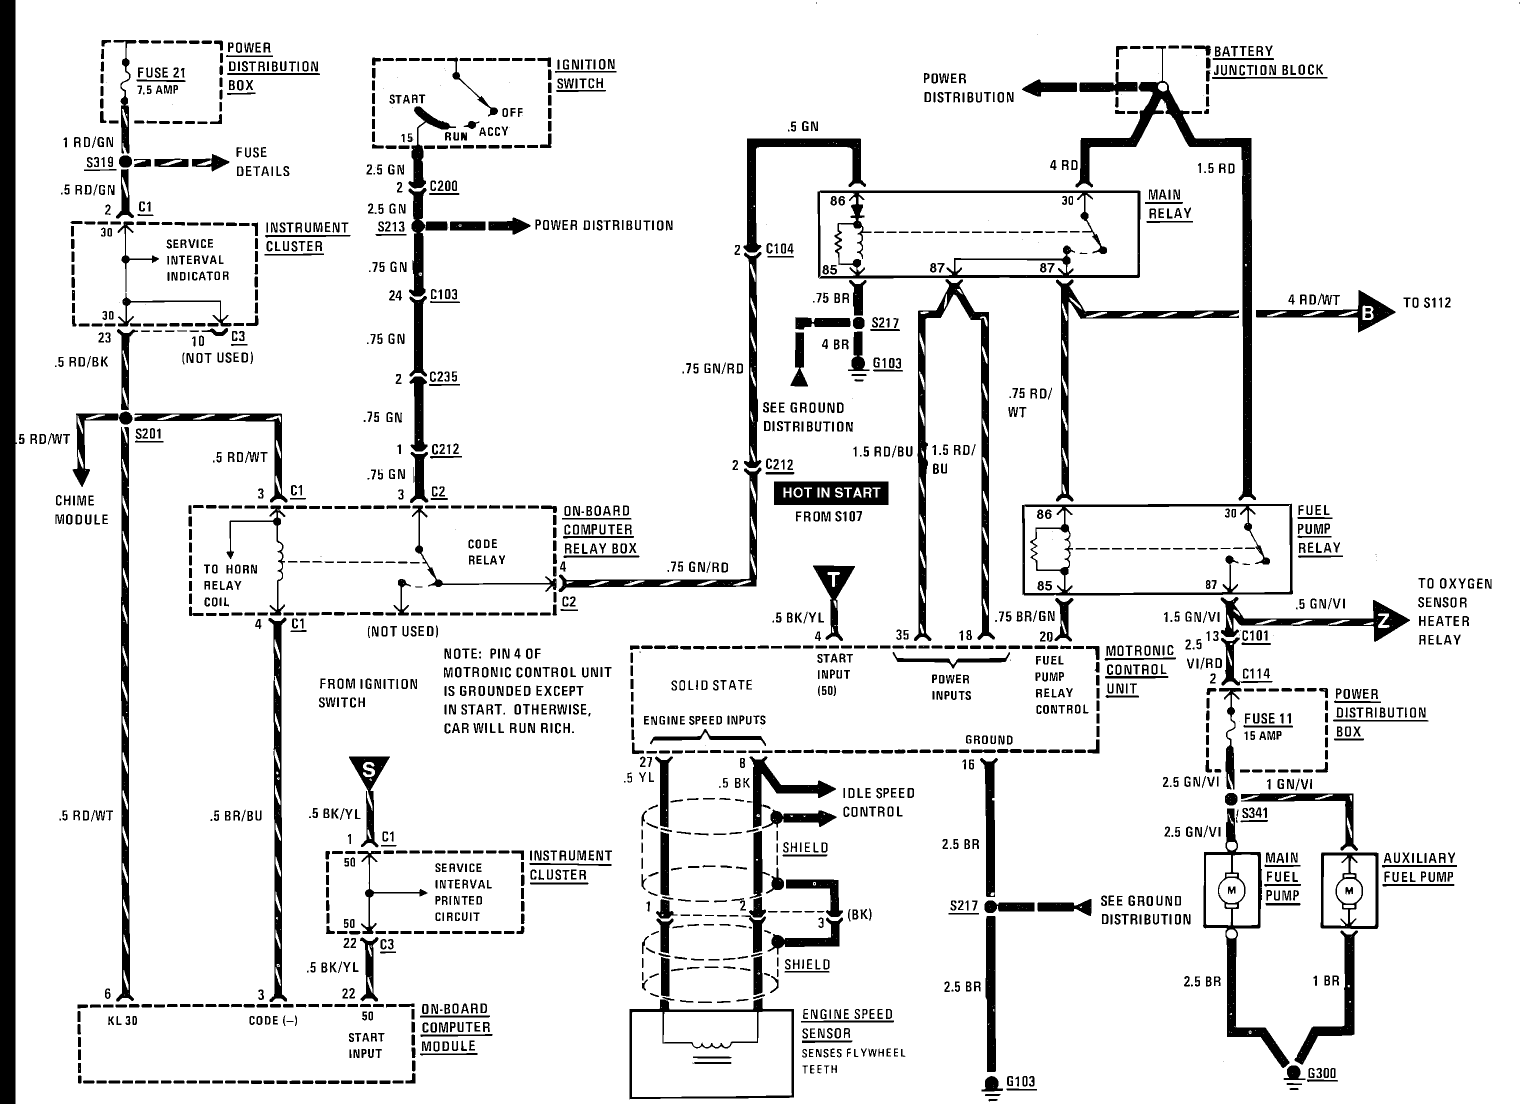 2001 bmw 325xi electrical diagram